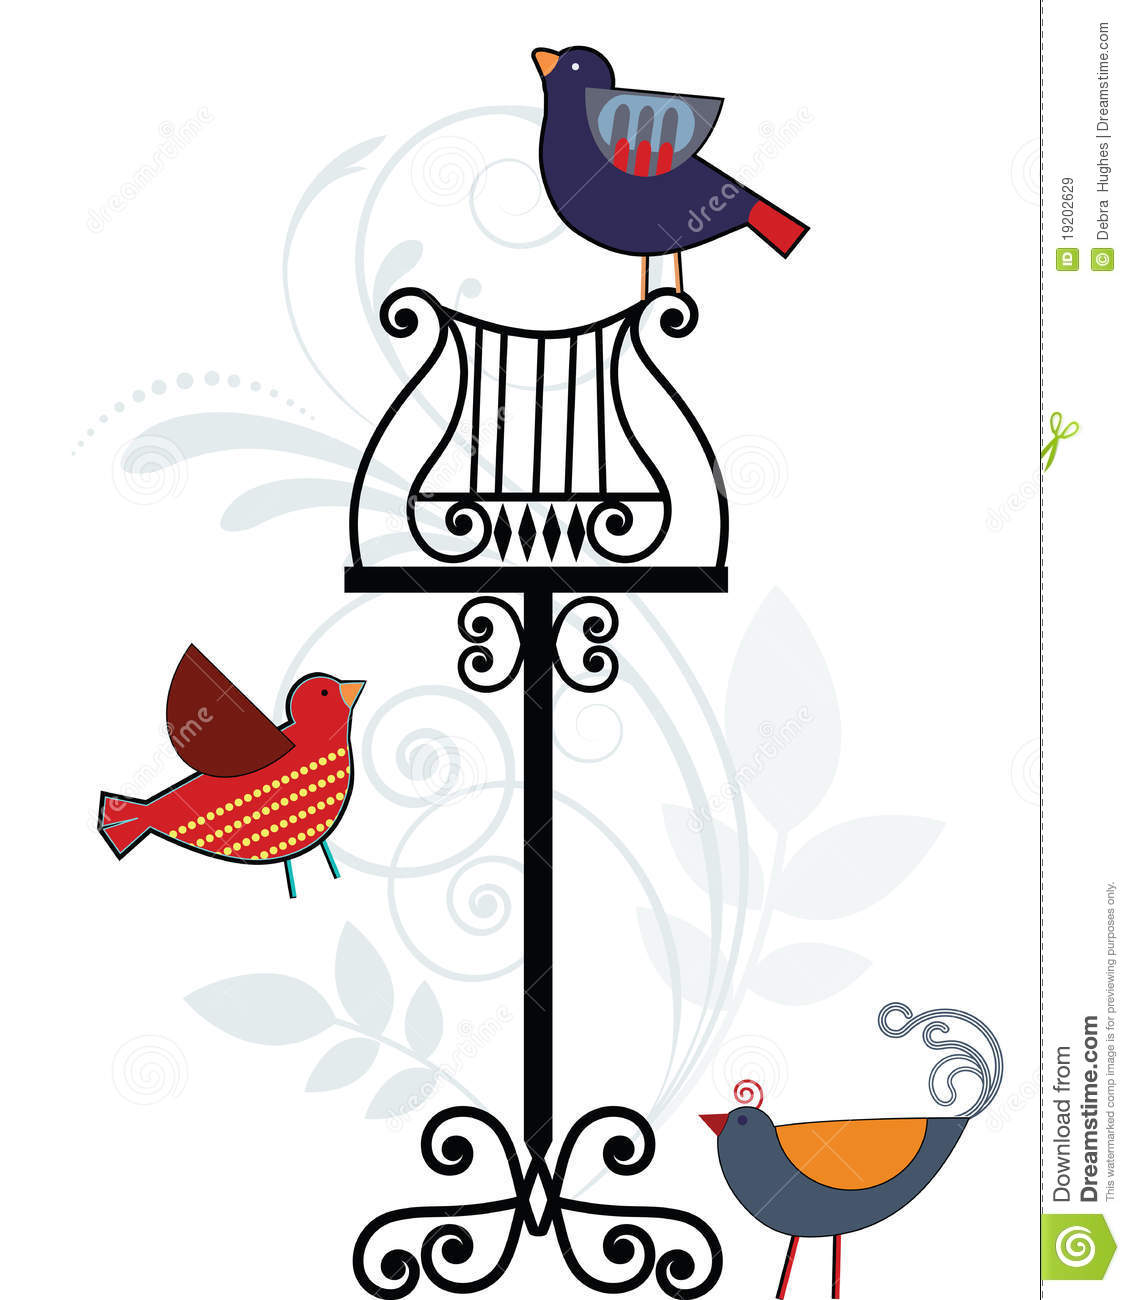 Whimsical Birds With Music Stand Royalty Free Stock Images Image 19202629